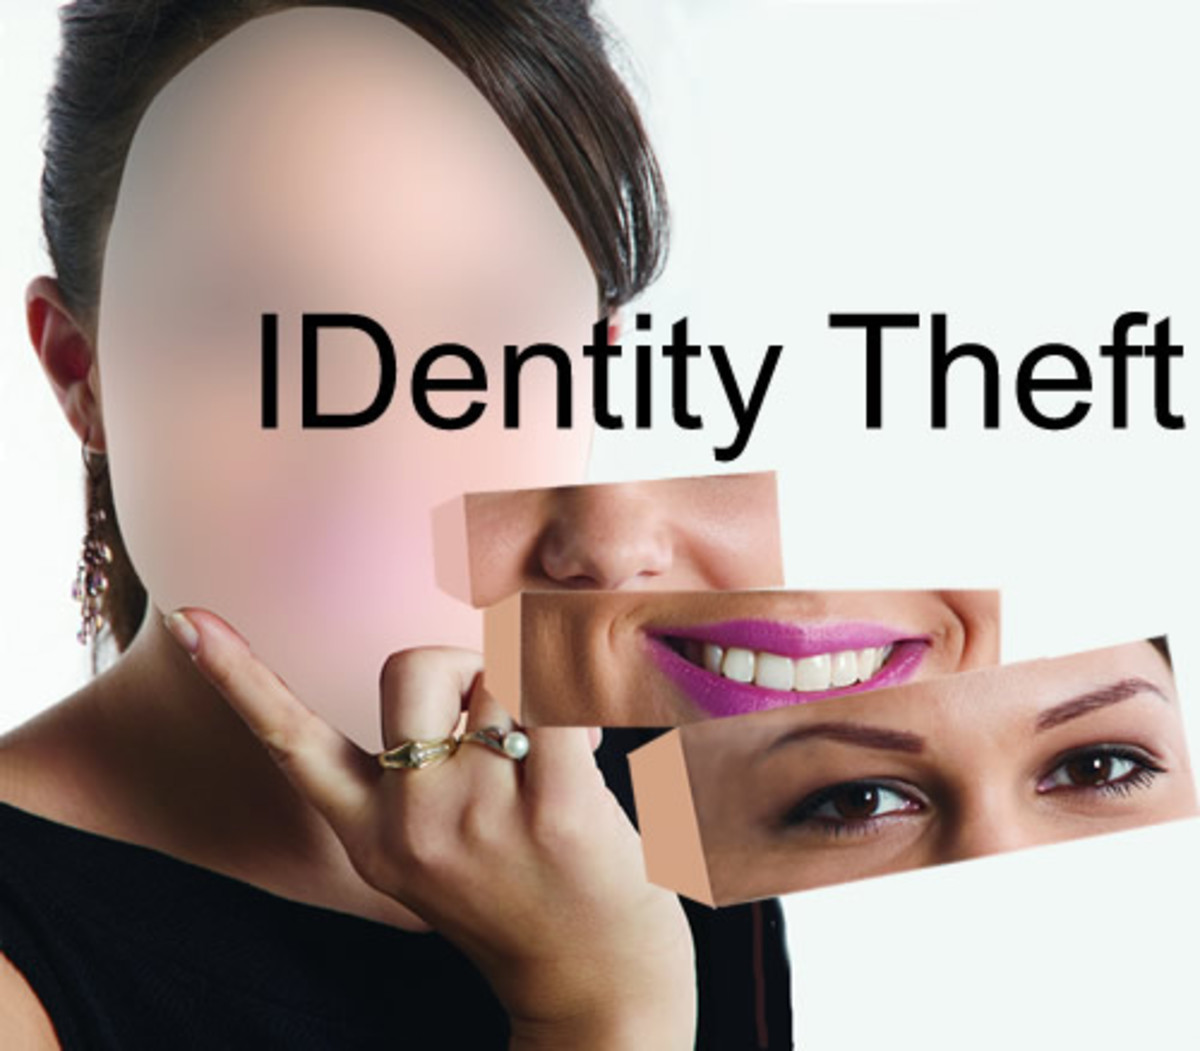 identity-theft-11-ways-to-prevent-it-from-happening-to-you